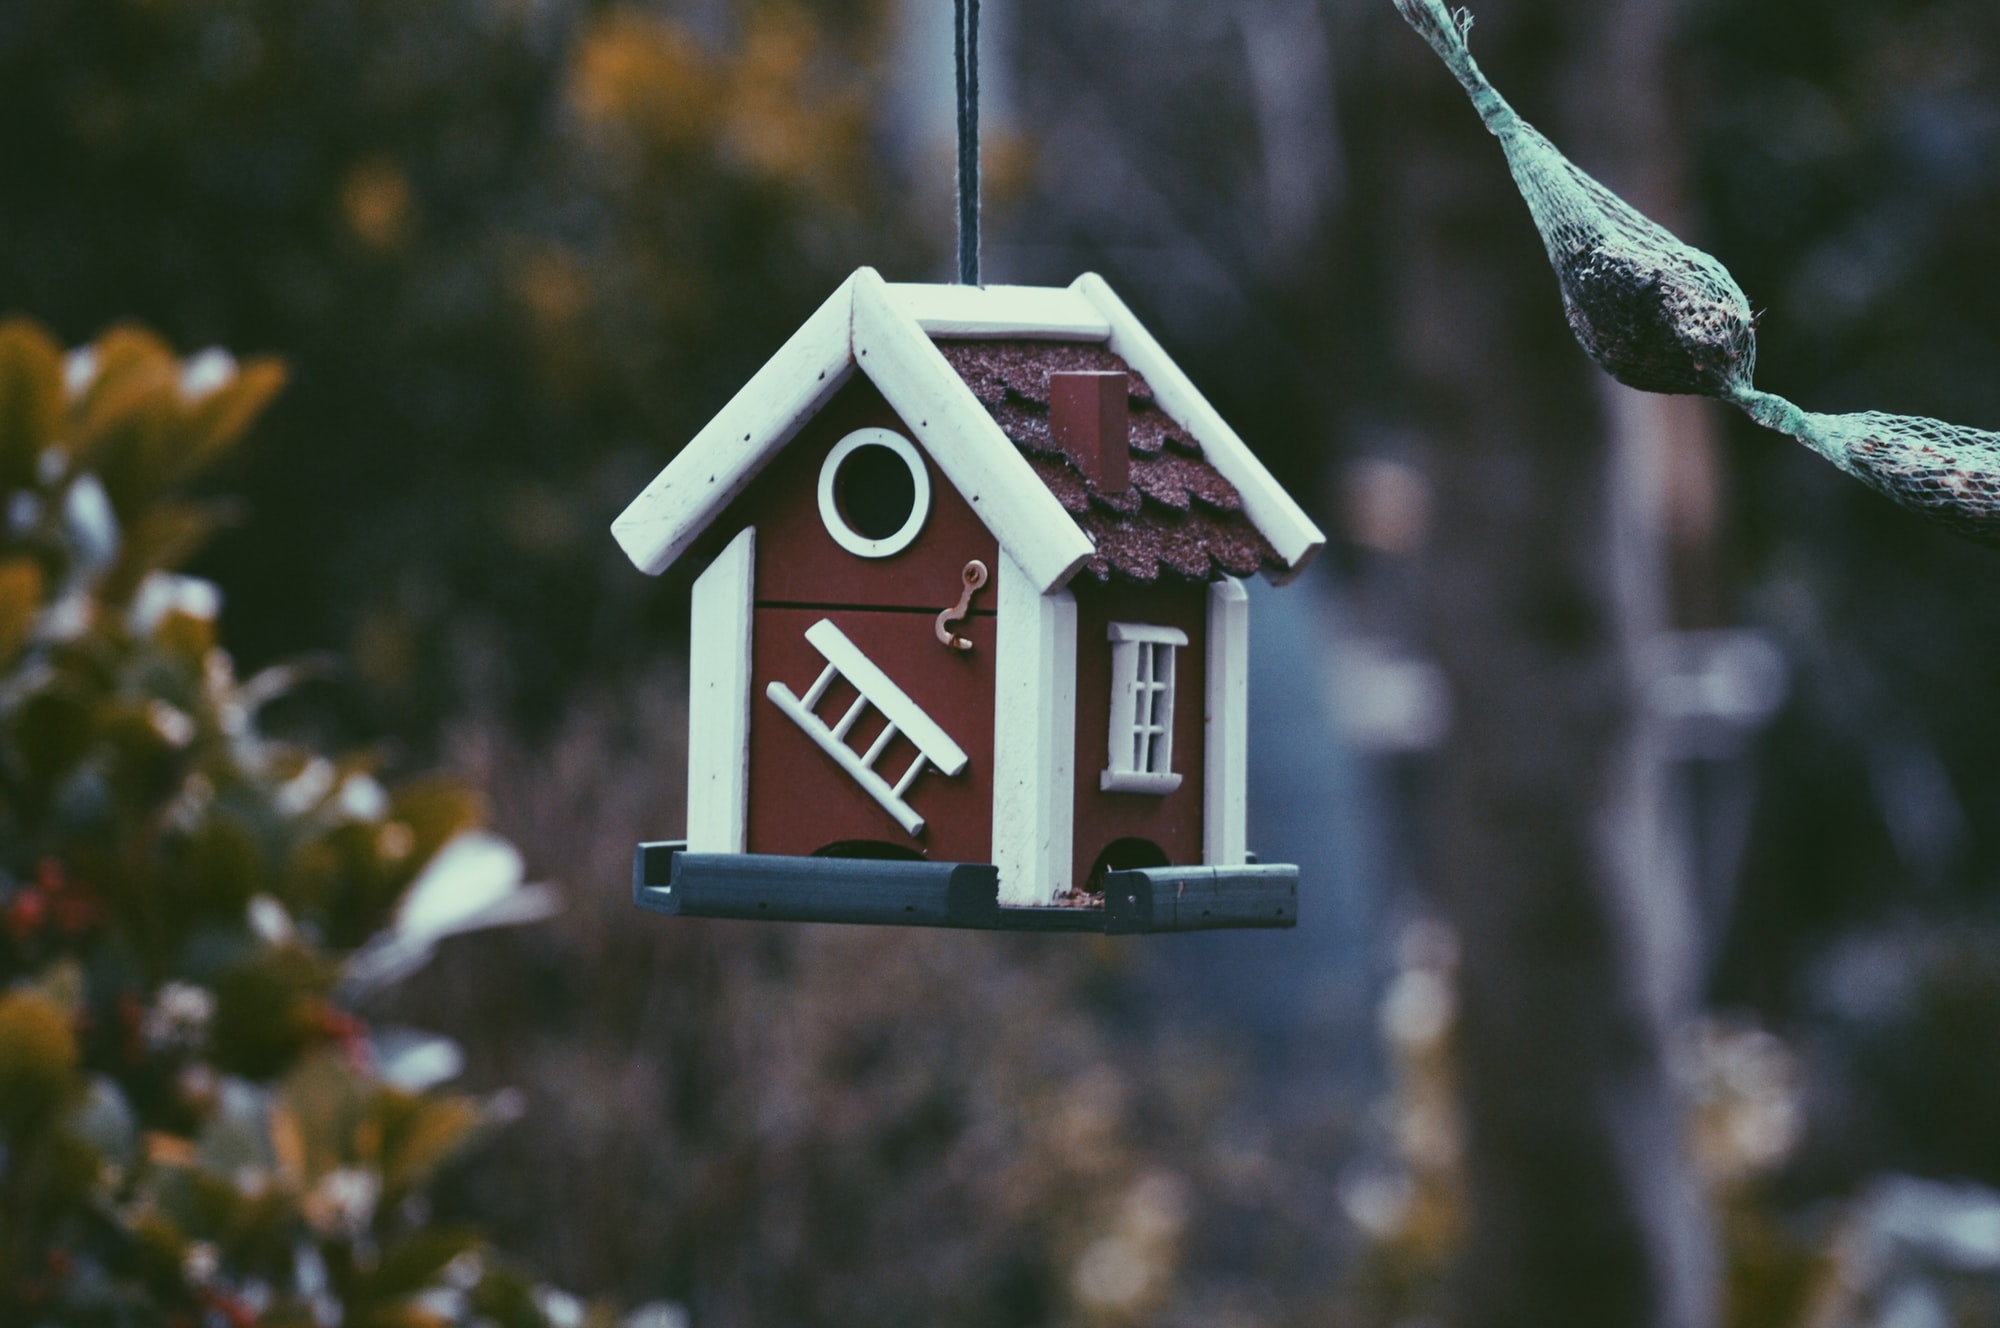 This is the Swedish birdhouse thats been living in our garden. bird house - Birdbox - Little house